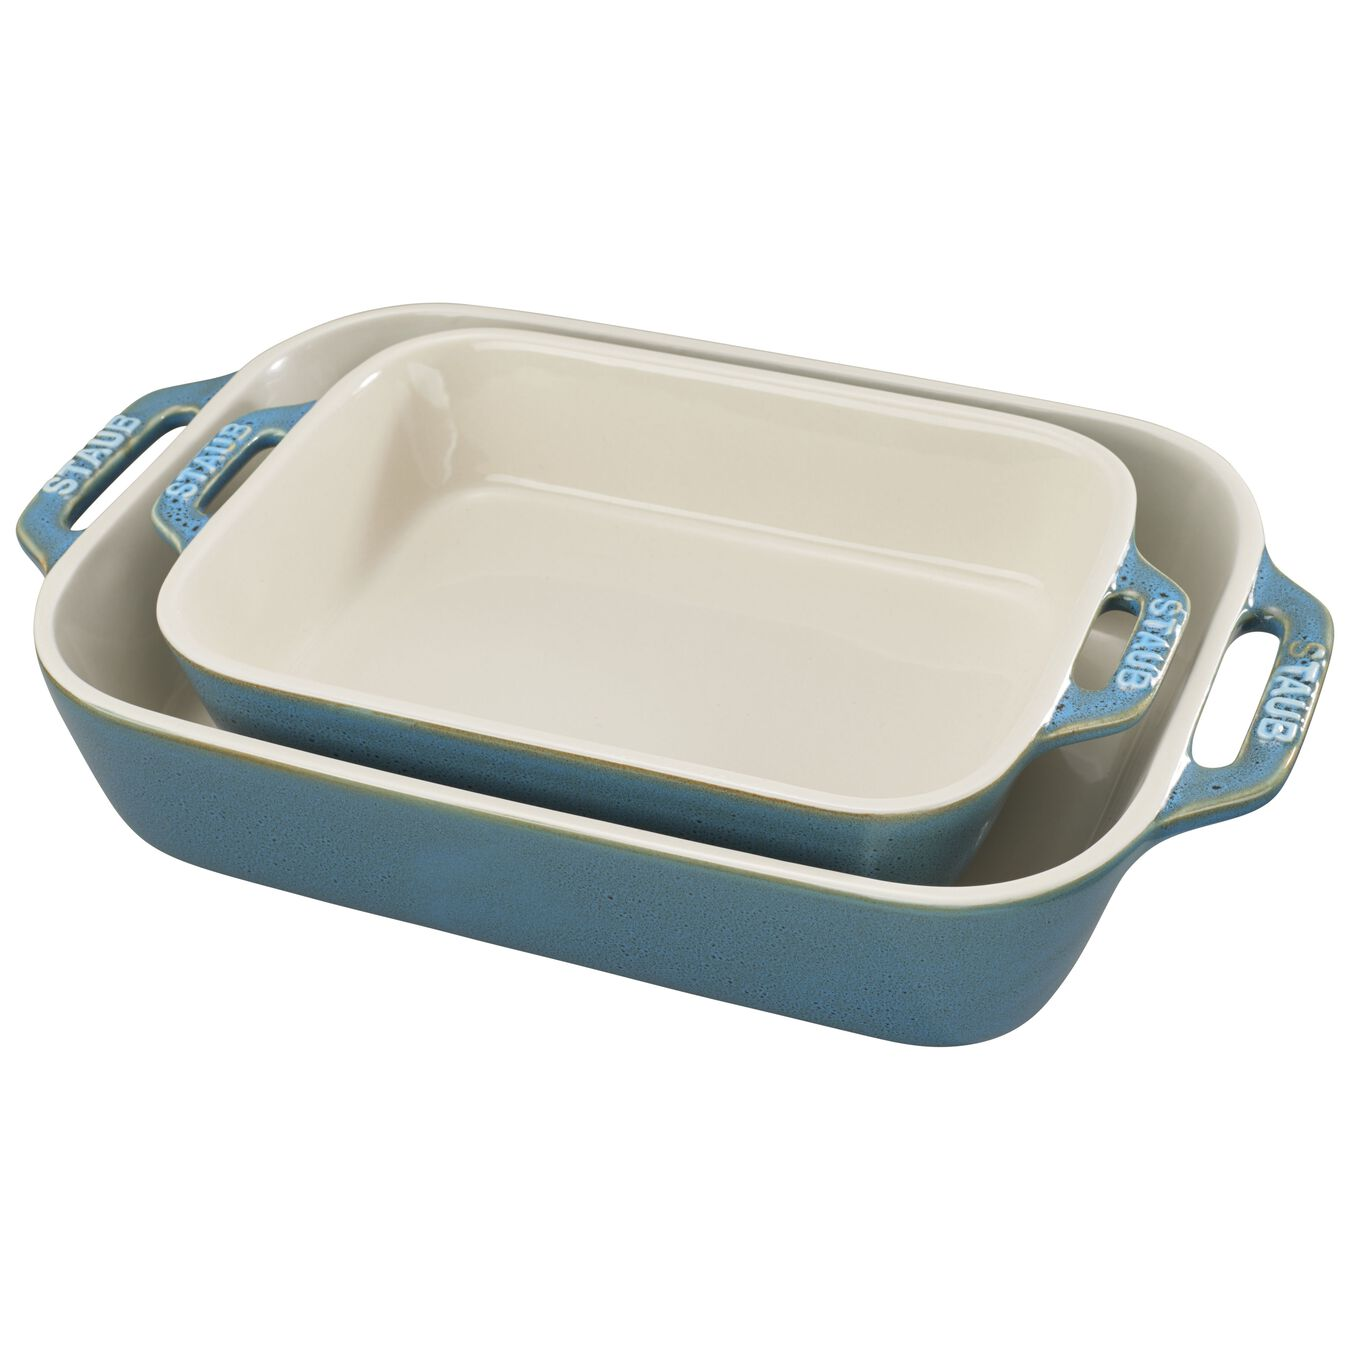 2-pc Rectangular Baking Dish Set - Rustic Turquoise,,large 1